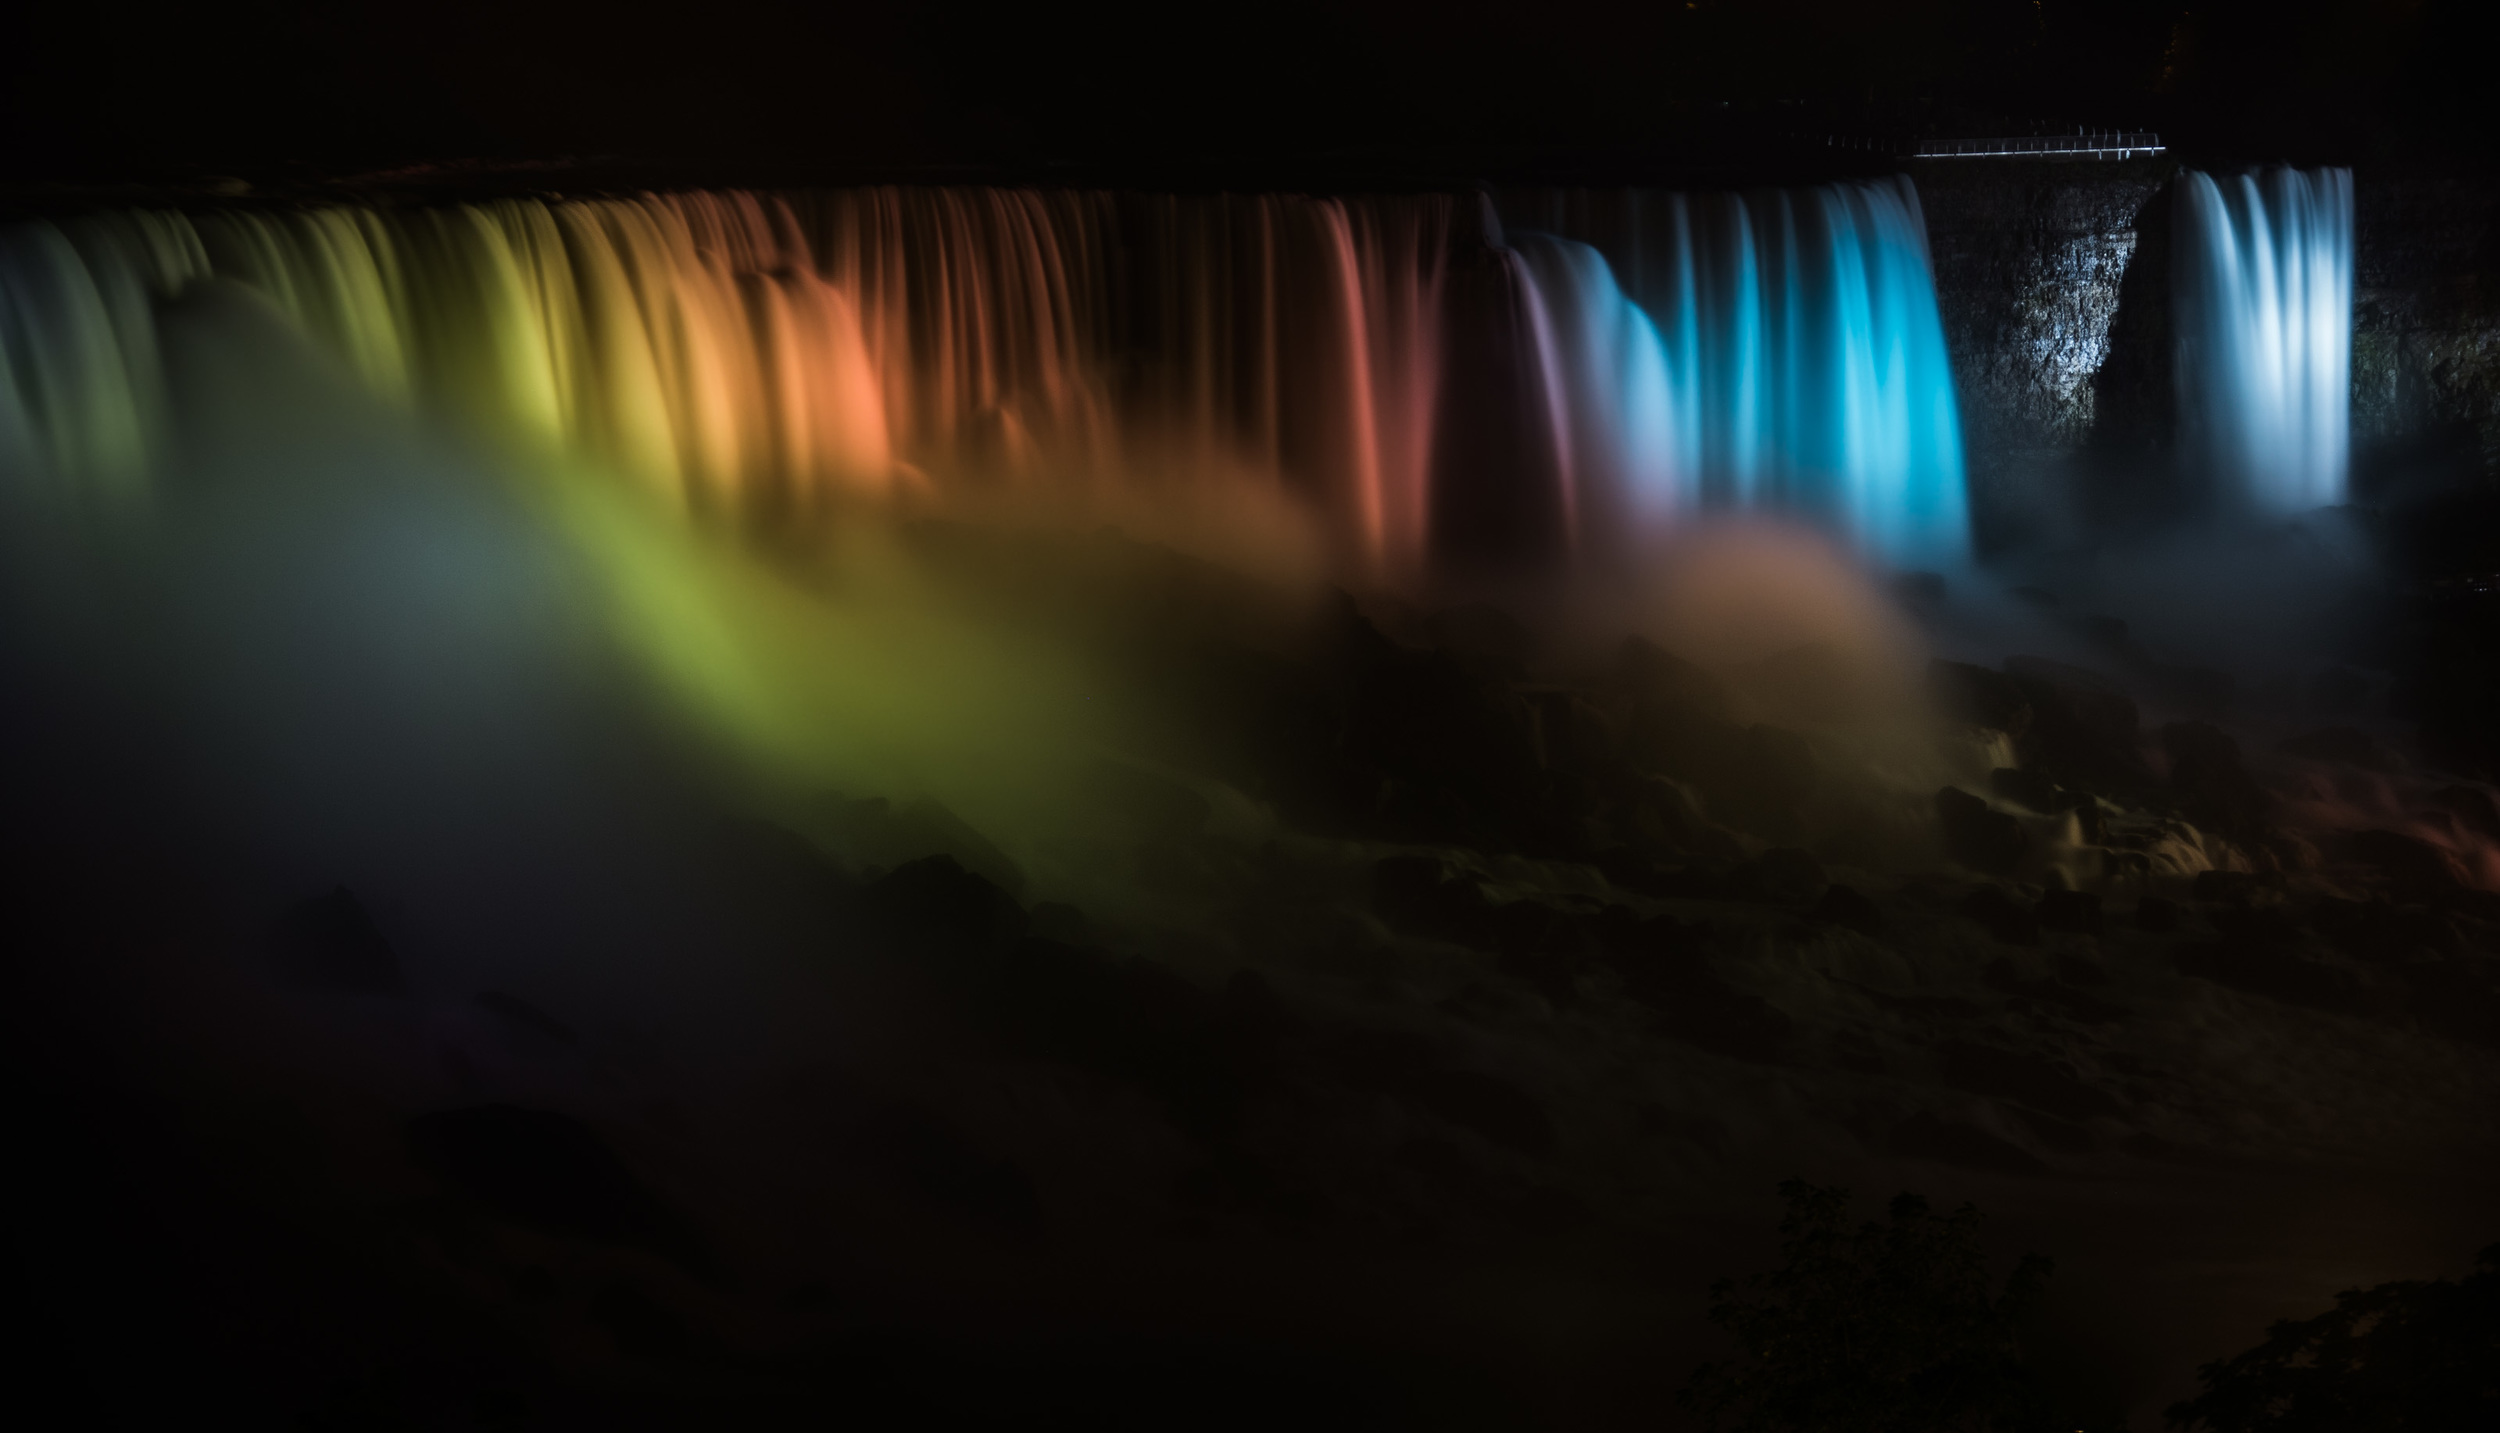 American and Bridal Veil Falls Iluminated at Night